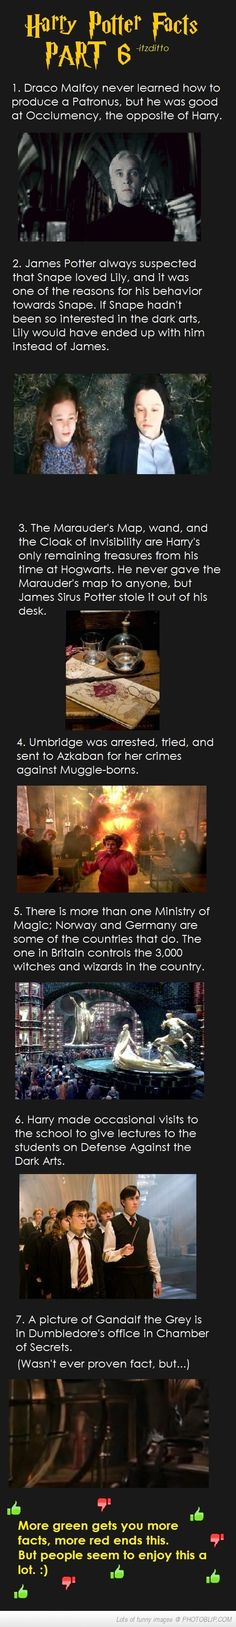 Harry Potter Facts Part 6 (Geek Stuff Hogwarts) Harry Potter World, Harry Potter Thema, Harry Potter Love, Harry Potter Universal, Harry Potter Fandom, Harry Potter Memes, Harry Potter Actors, Golden Trio, Severus Rogue